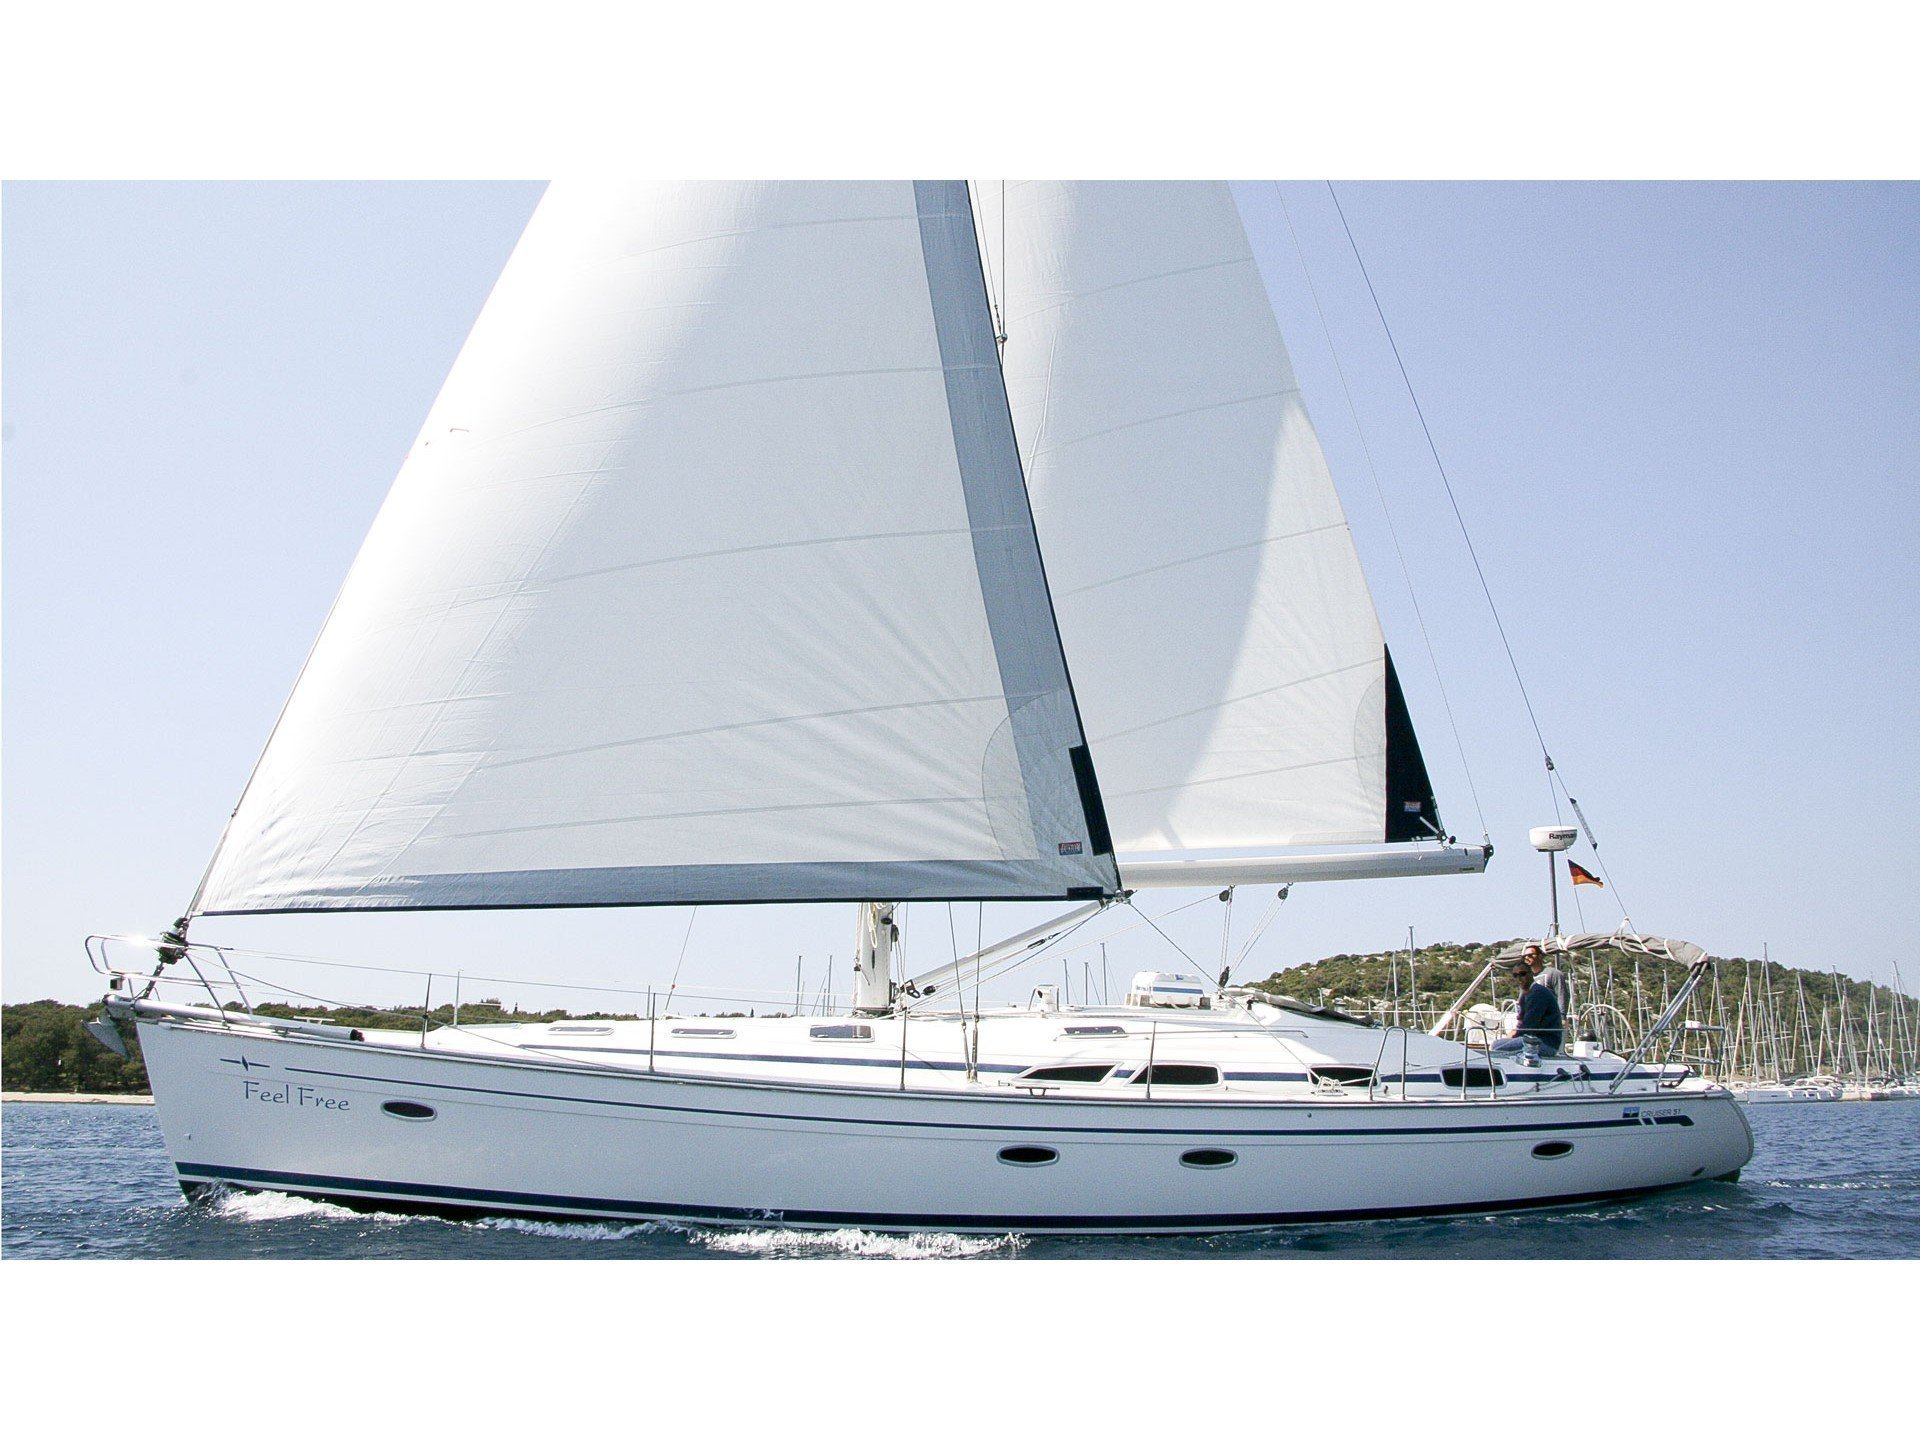 Bavaria 51 Cruiser (Feel Free) Main image - 0